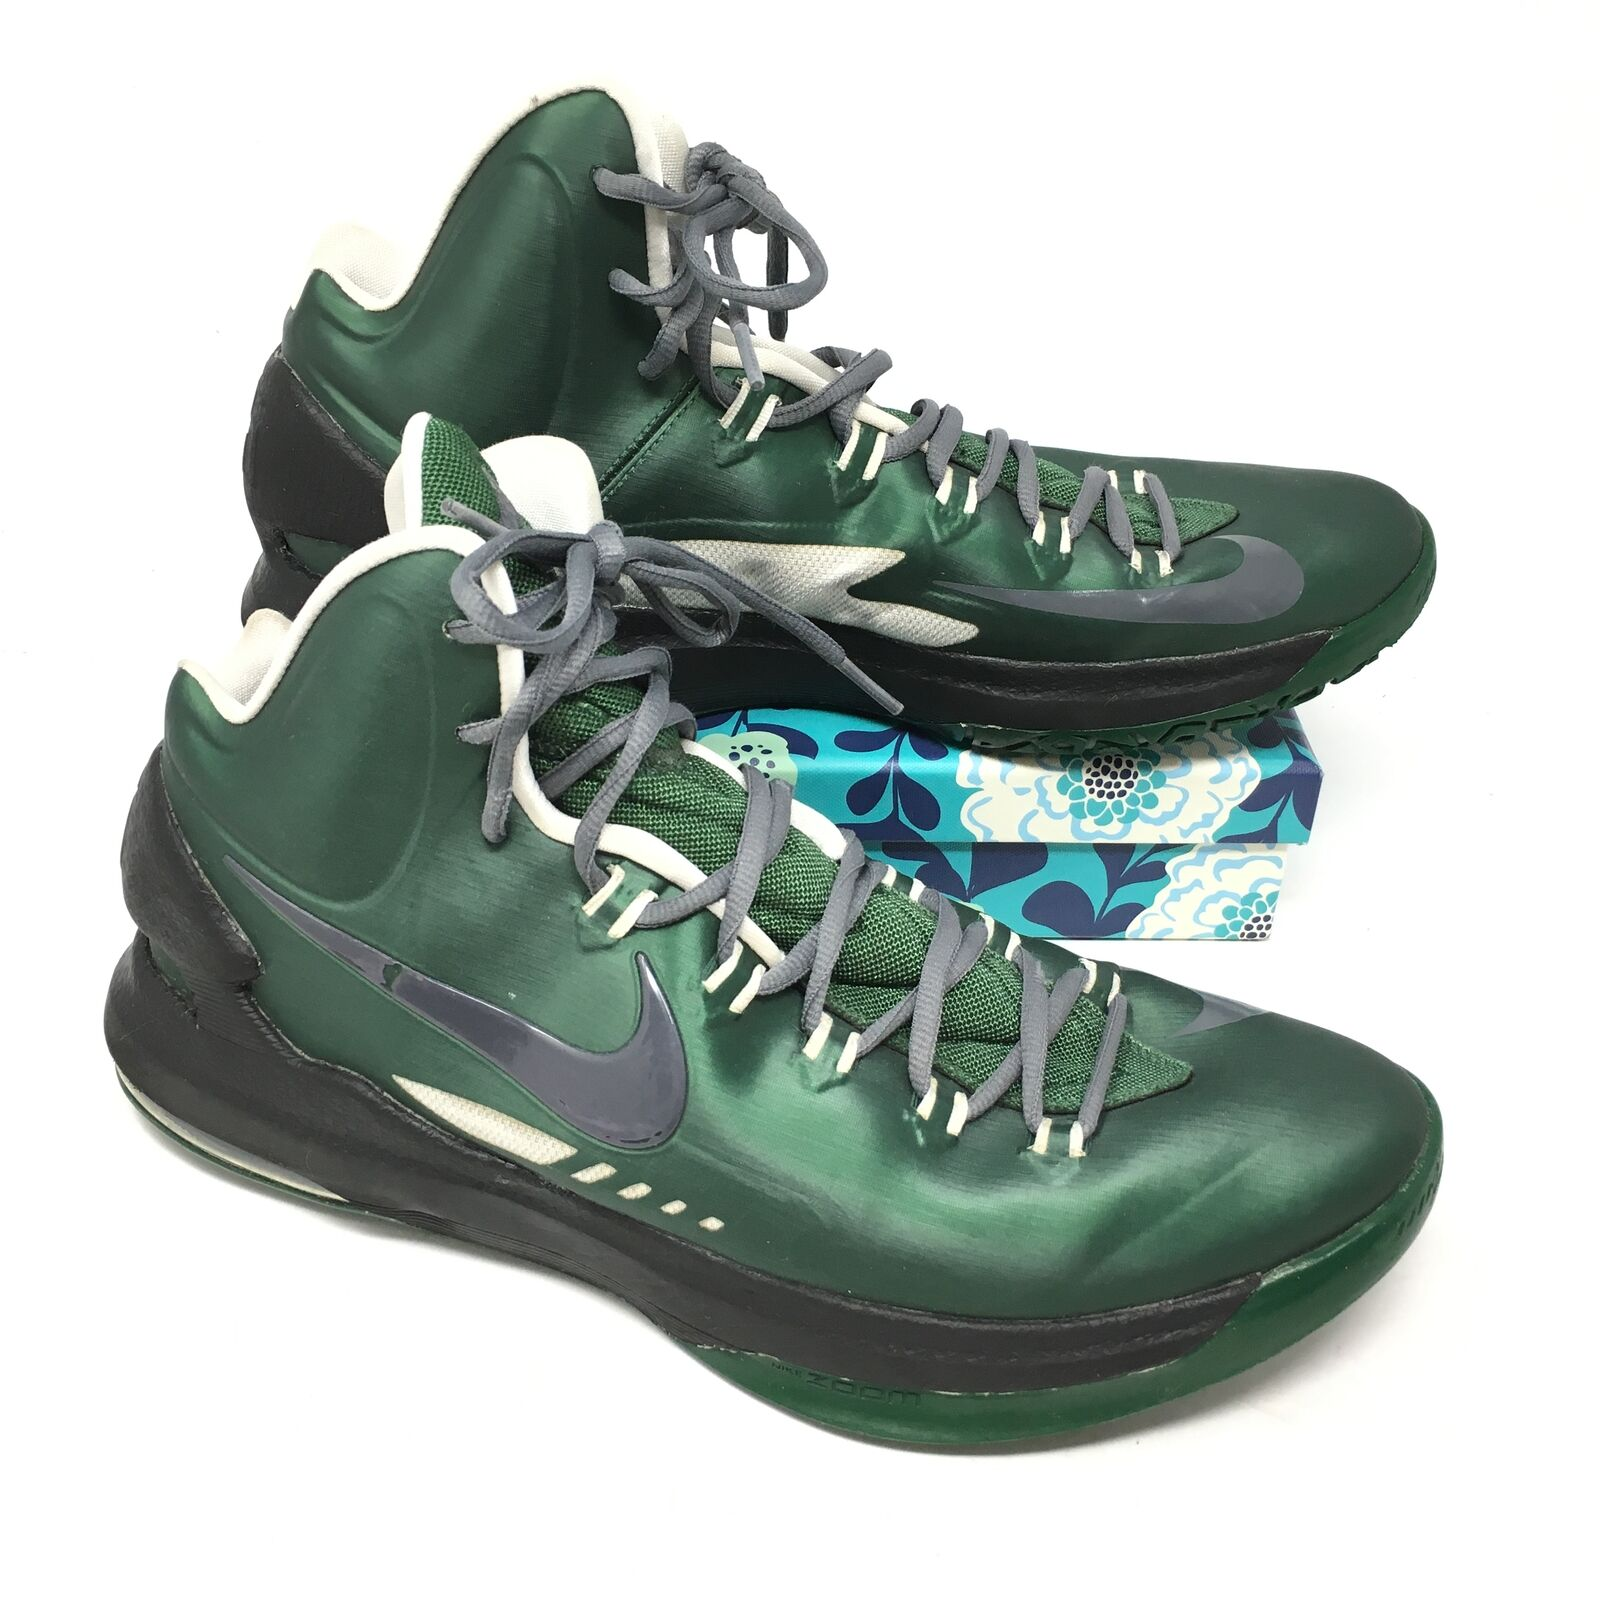 Men's Nike Zoom KD 5 V shoes Sneaker Size 12.5 Basketball NikeID Green Black G14